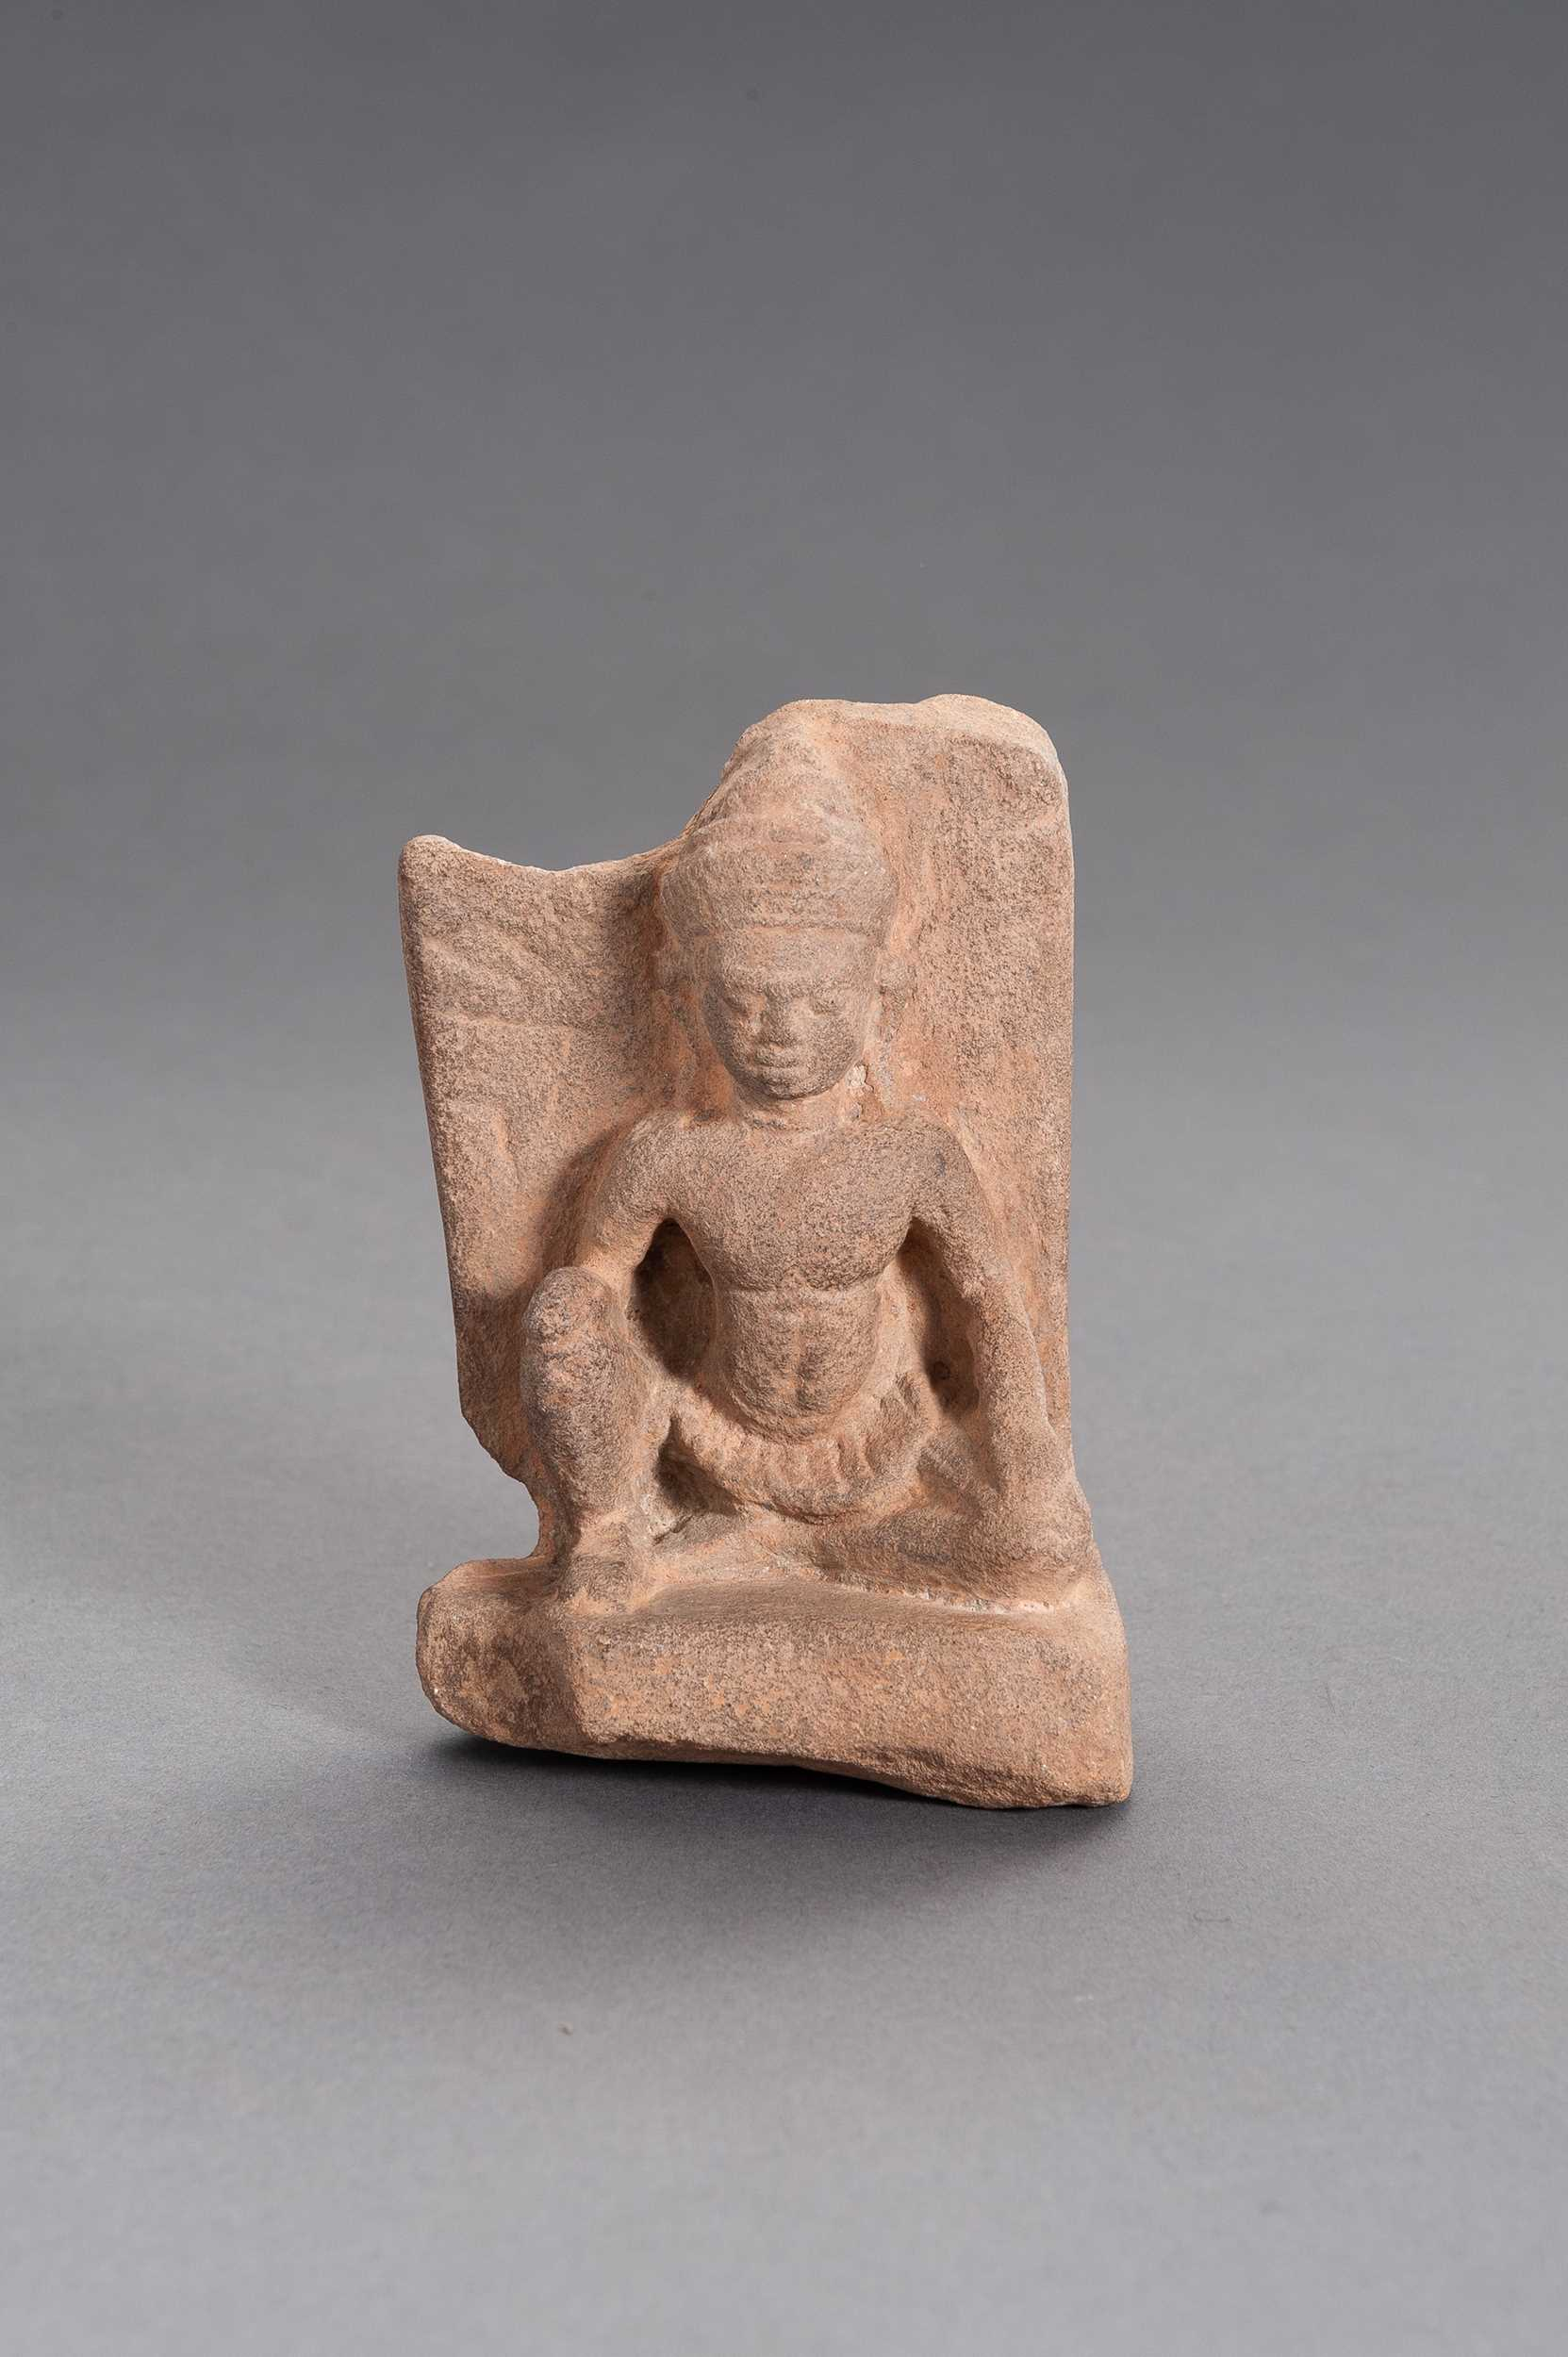 A SMALL KHMER SANDSTONE RELIEF OF BUDDHA